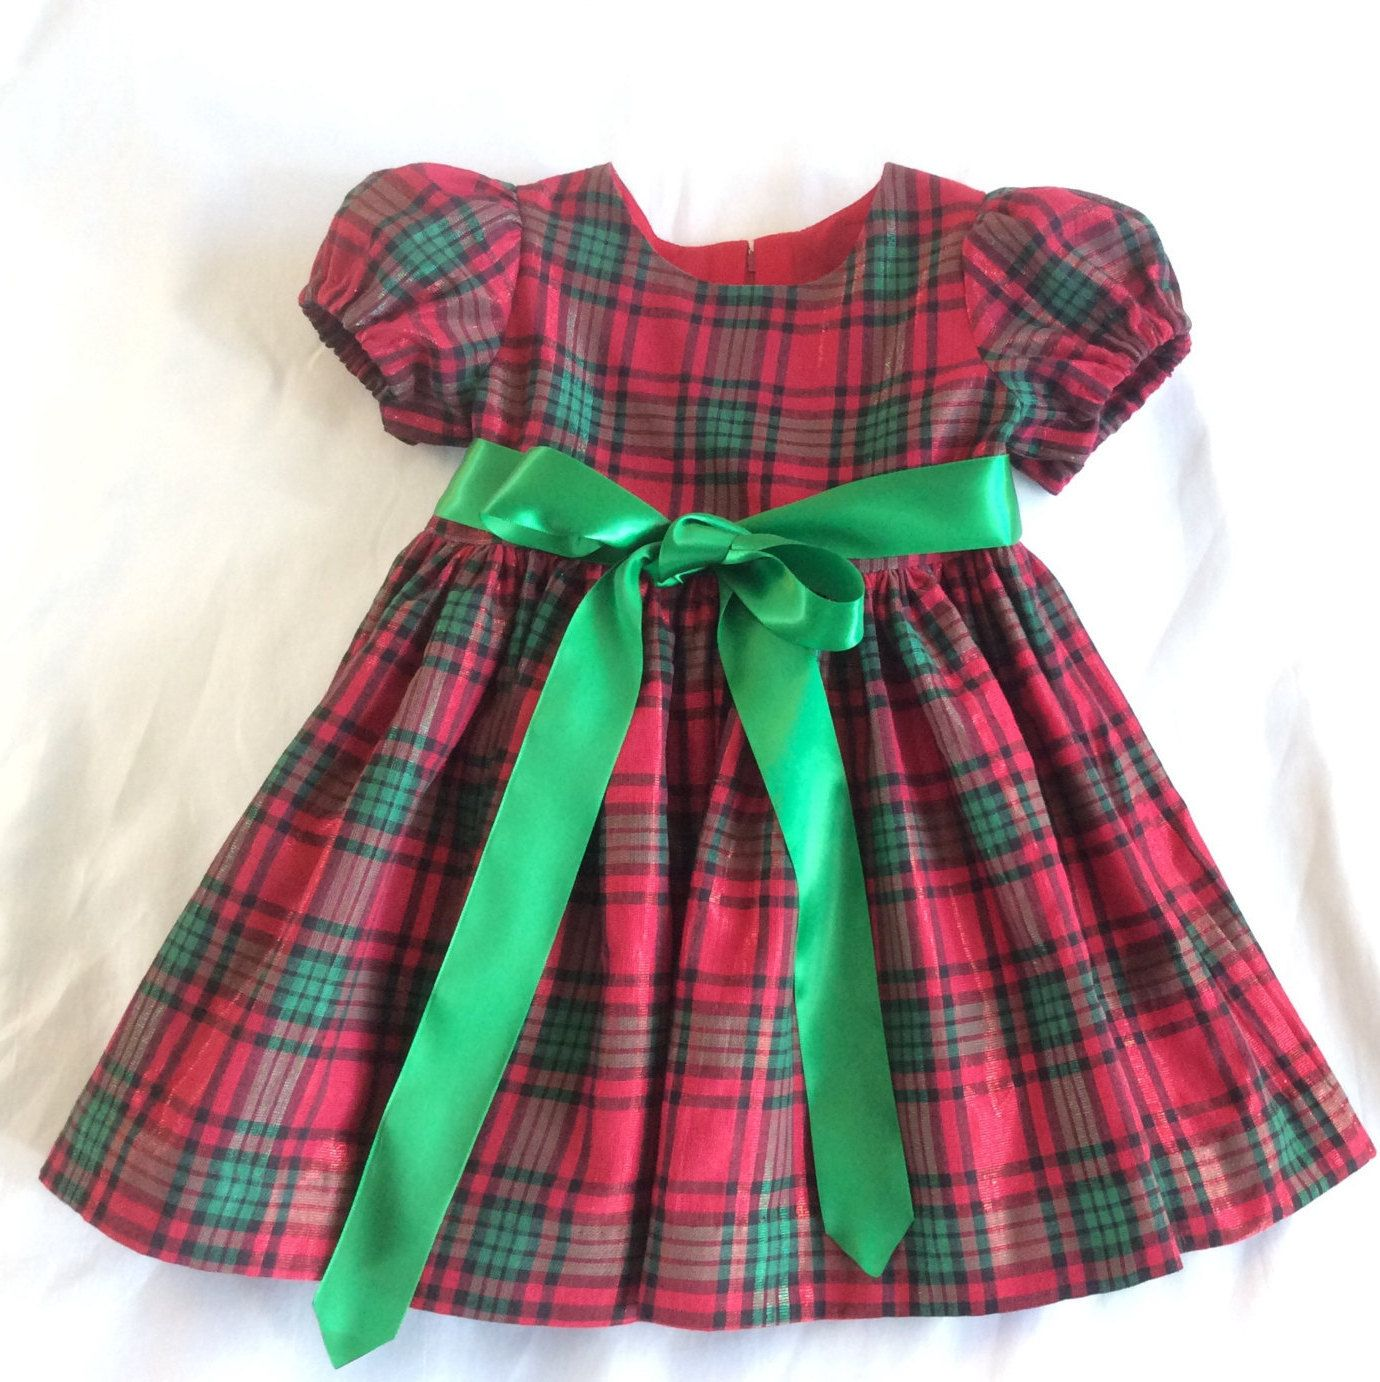 Girls Toddlers Christmas Dress Red Green Plaid Dress Cotton Etsy Toddler Christmas Dress Girls Cotton Dresses Green Plaid Dress